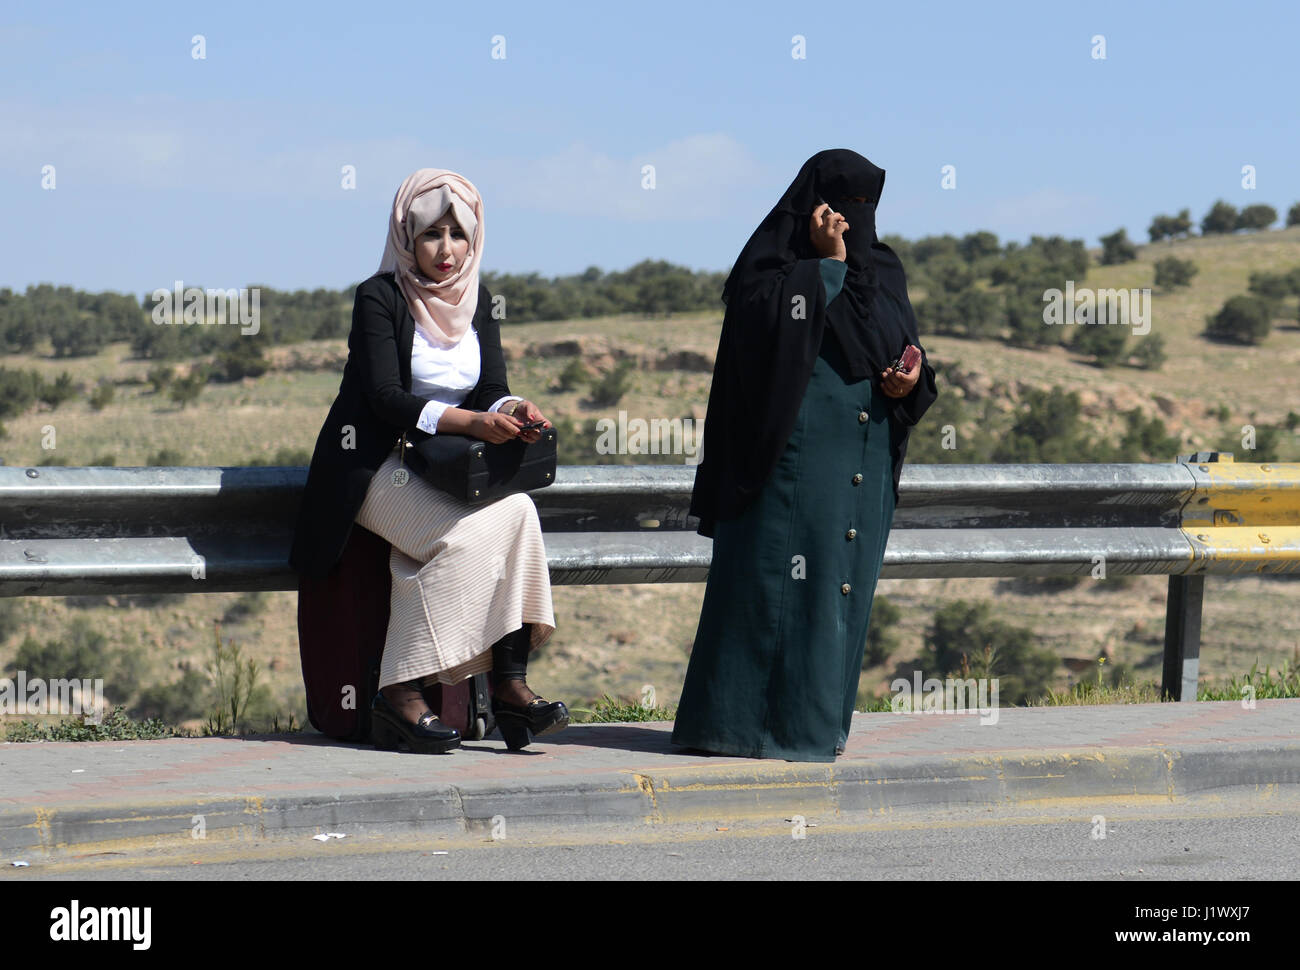 Jordanian women wating for the bus in a rural area in northern Jordan. - Stock Image